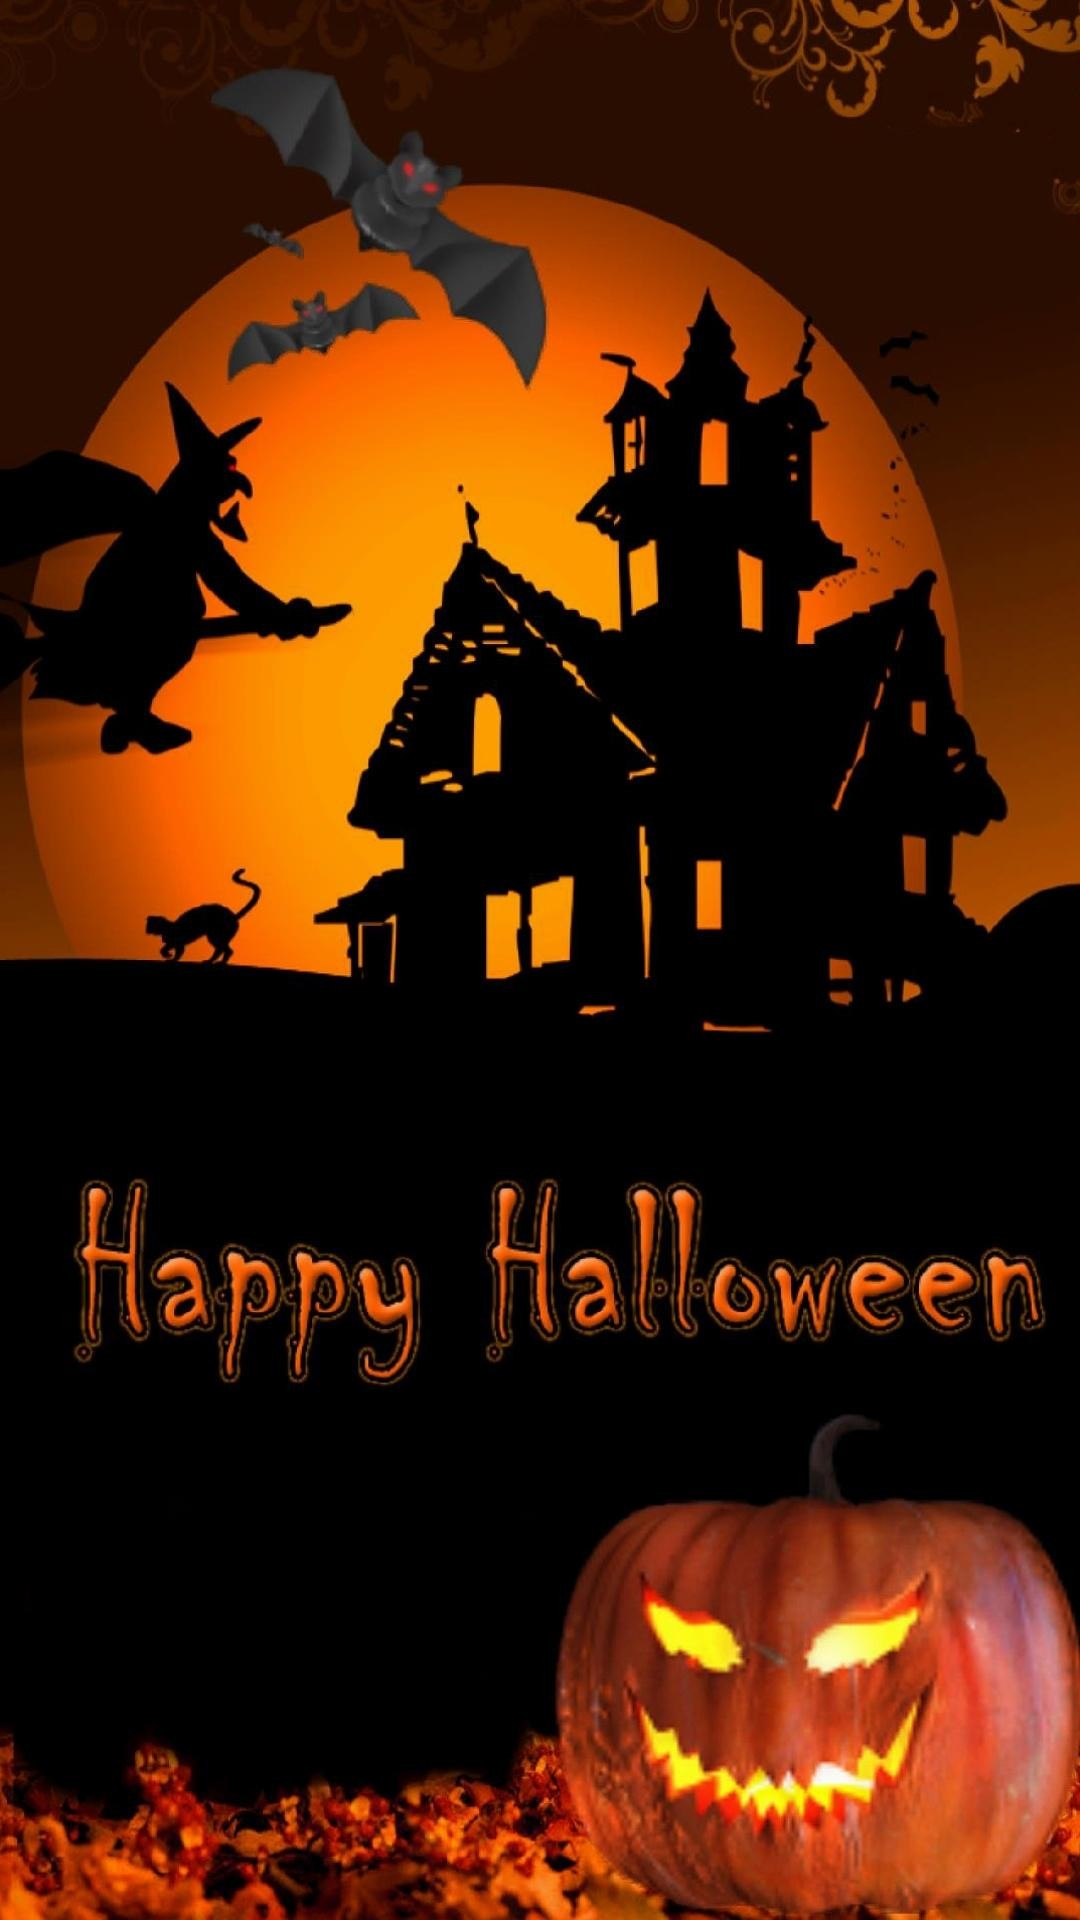 Halloween Wallpapers For Android Smartphone – Androidwallpaper. Halloween  Wallpapers For Android Smartphone Androidwallpaper